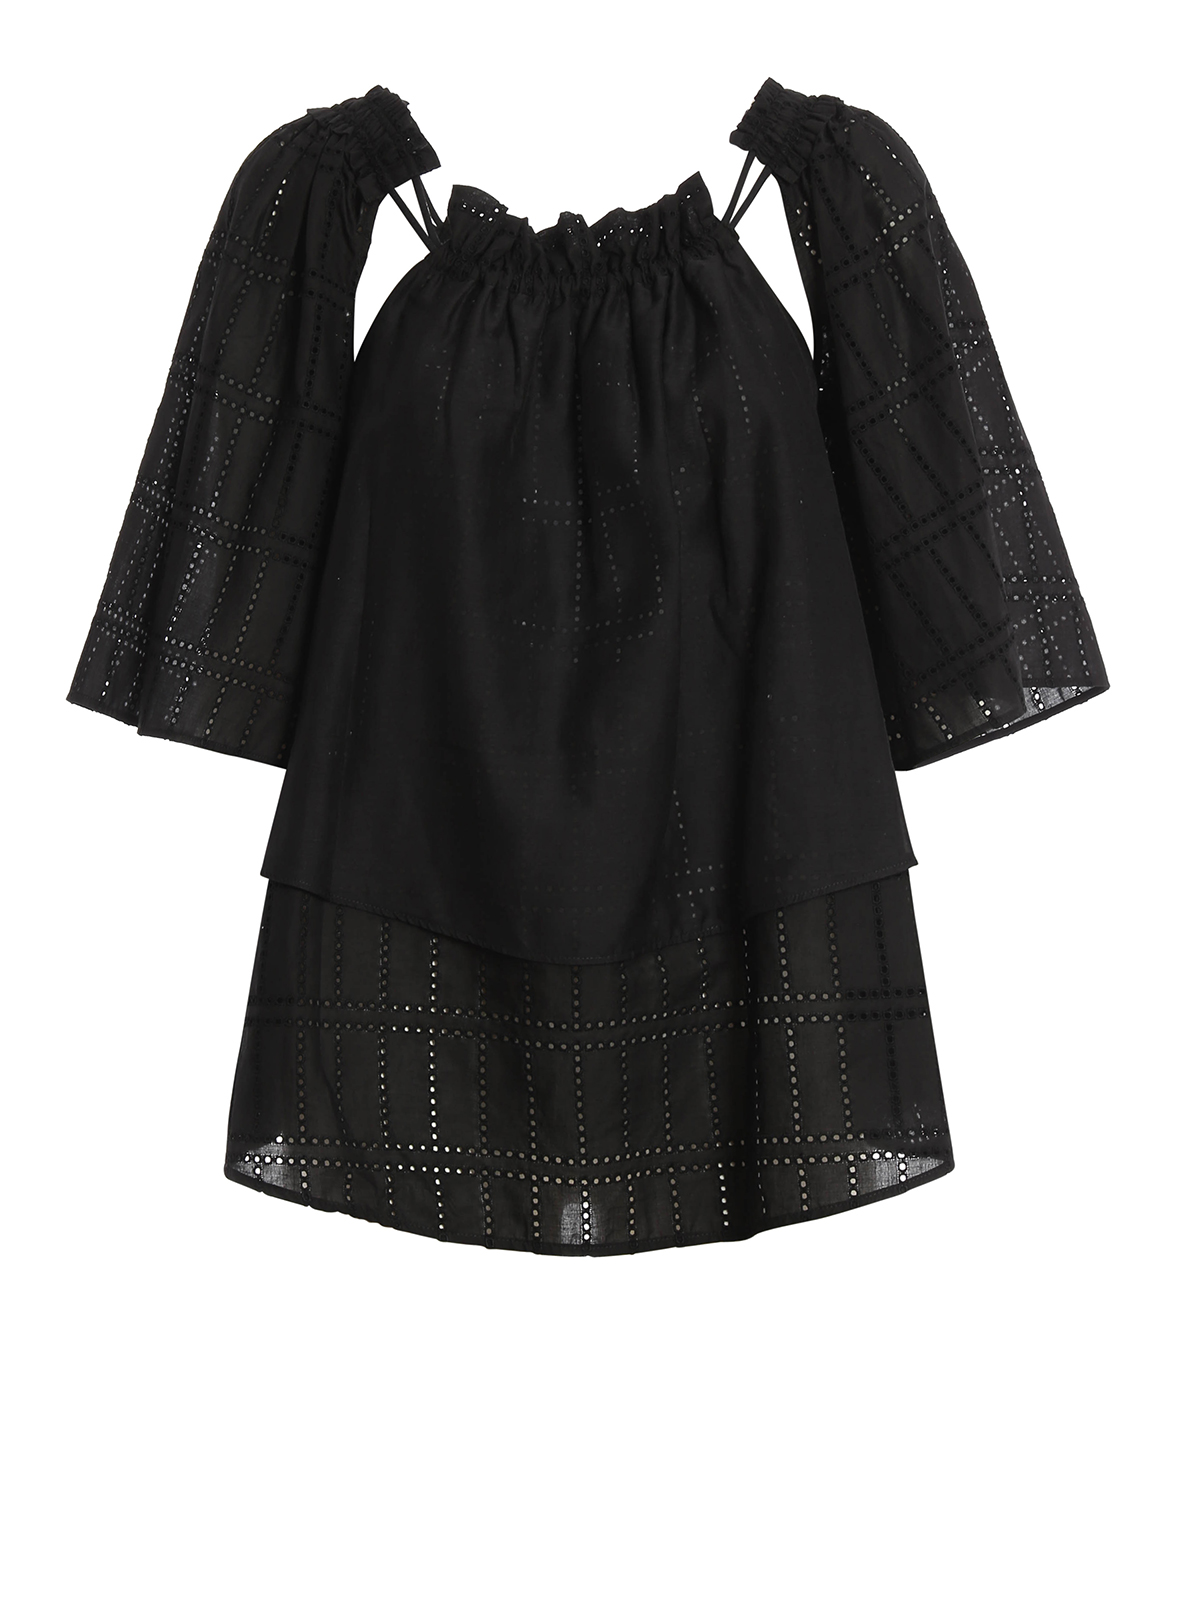 broderie anglaise cotton blouse by blumarine blouses. Black Bedroom Furniture Sets. Home Design Ideas